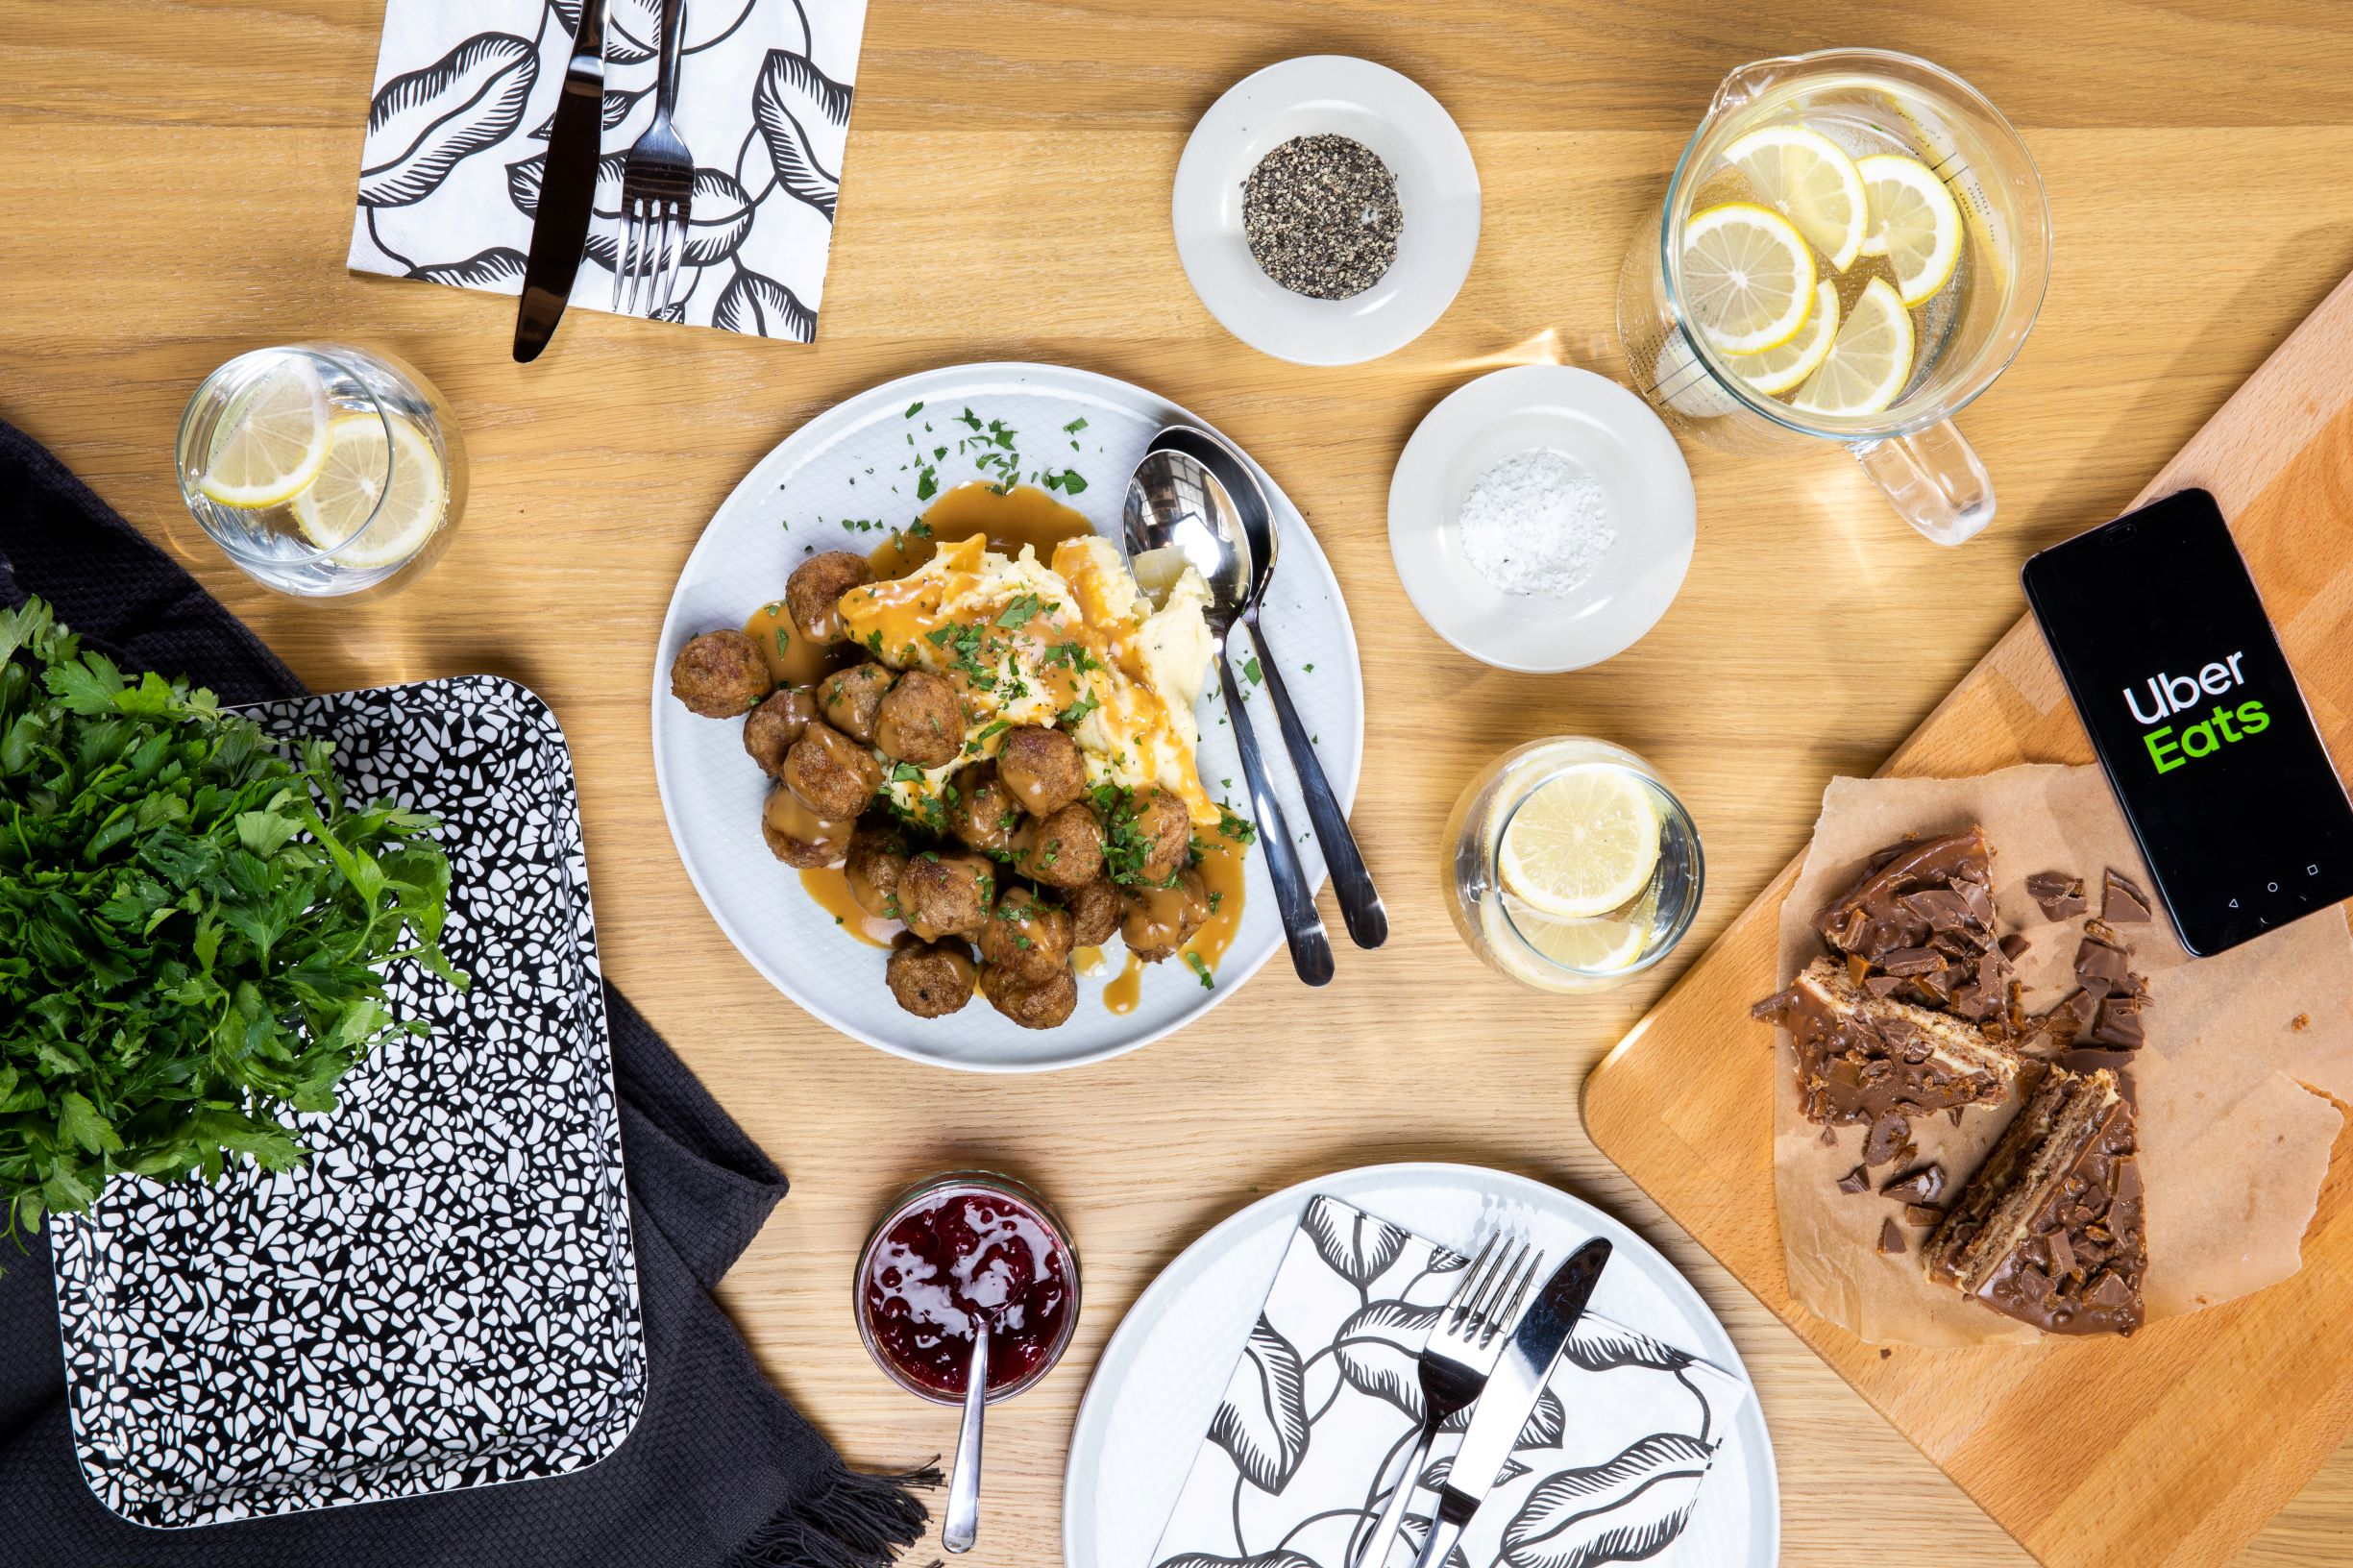 Ikea arrives on Uber Eats